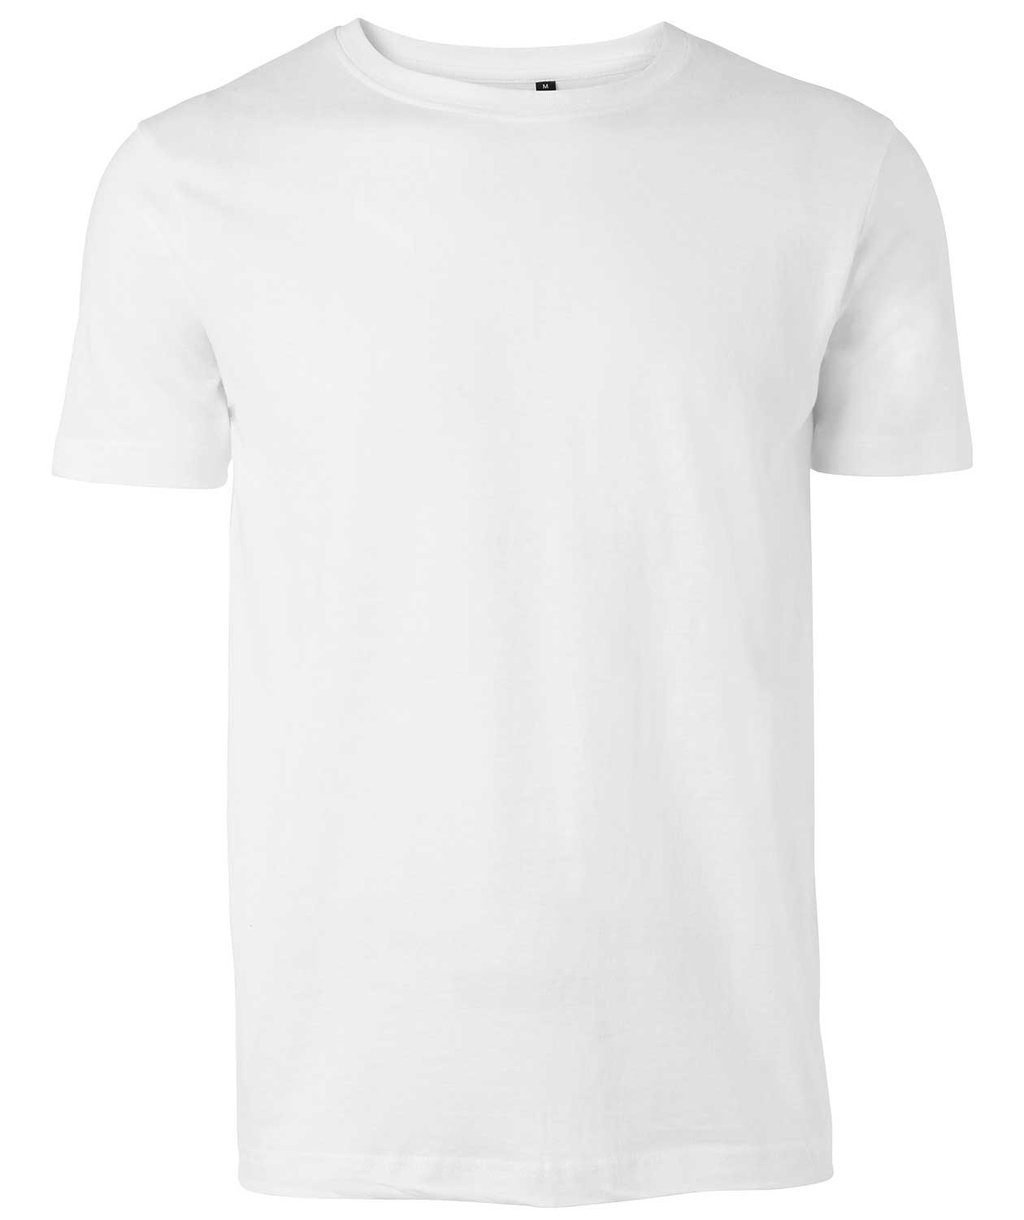 South West Basic unisex T-shirt, Hvid